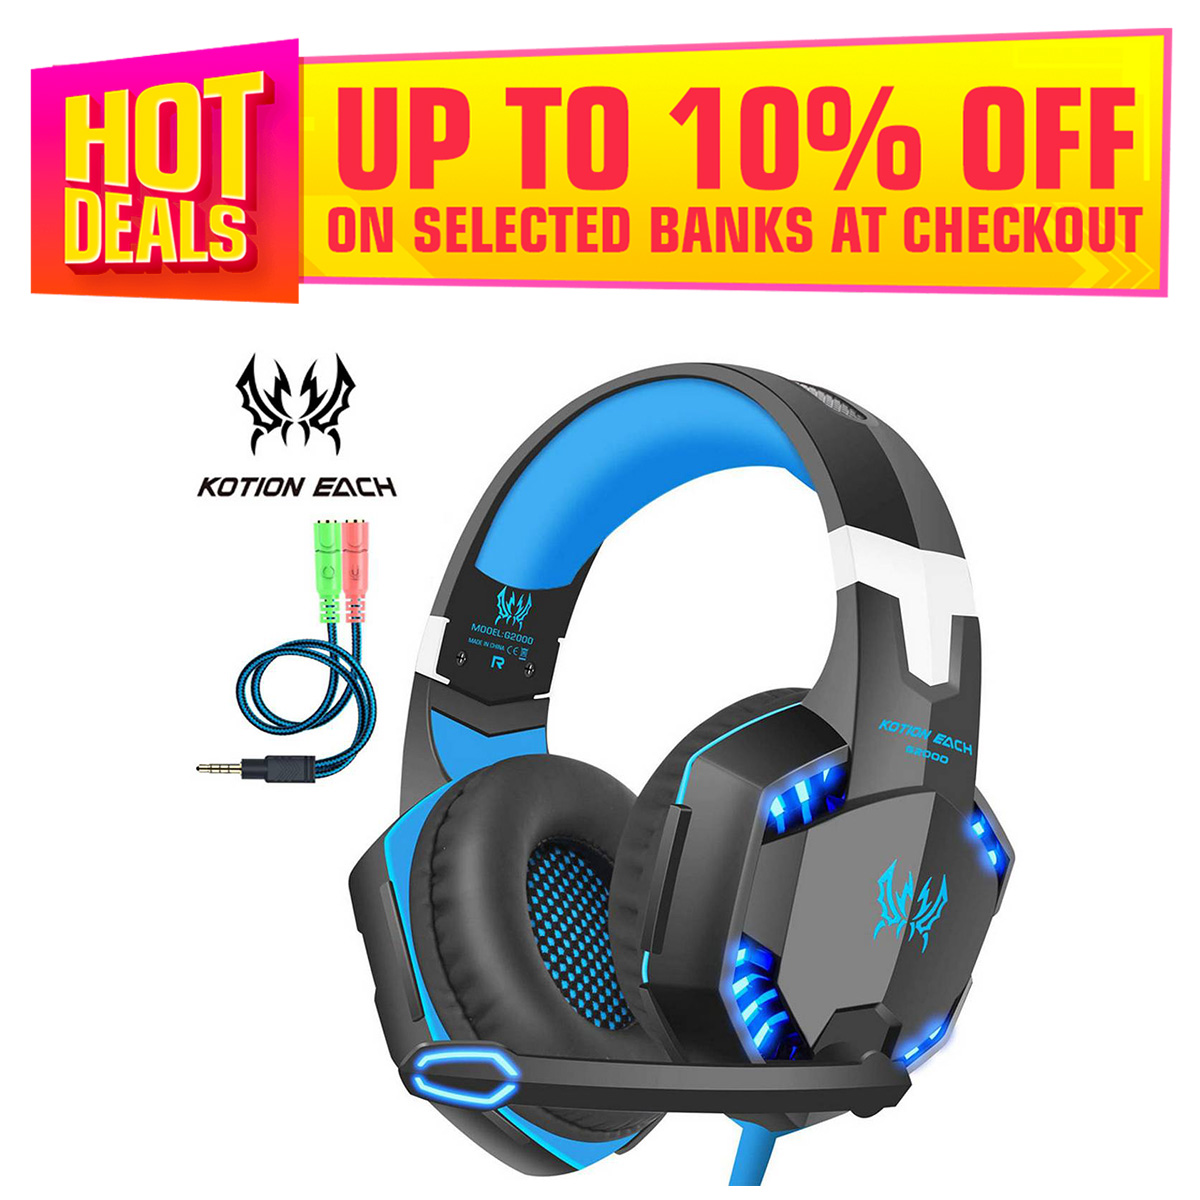 Kotion Each G2000 Gaming Headset Surround Sound Stereo Headphone with Noise Isolation Microphone In-Line Control for PC PS4 Xbox One - Blue